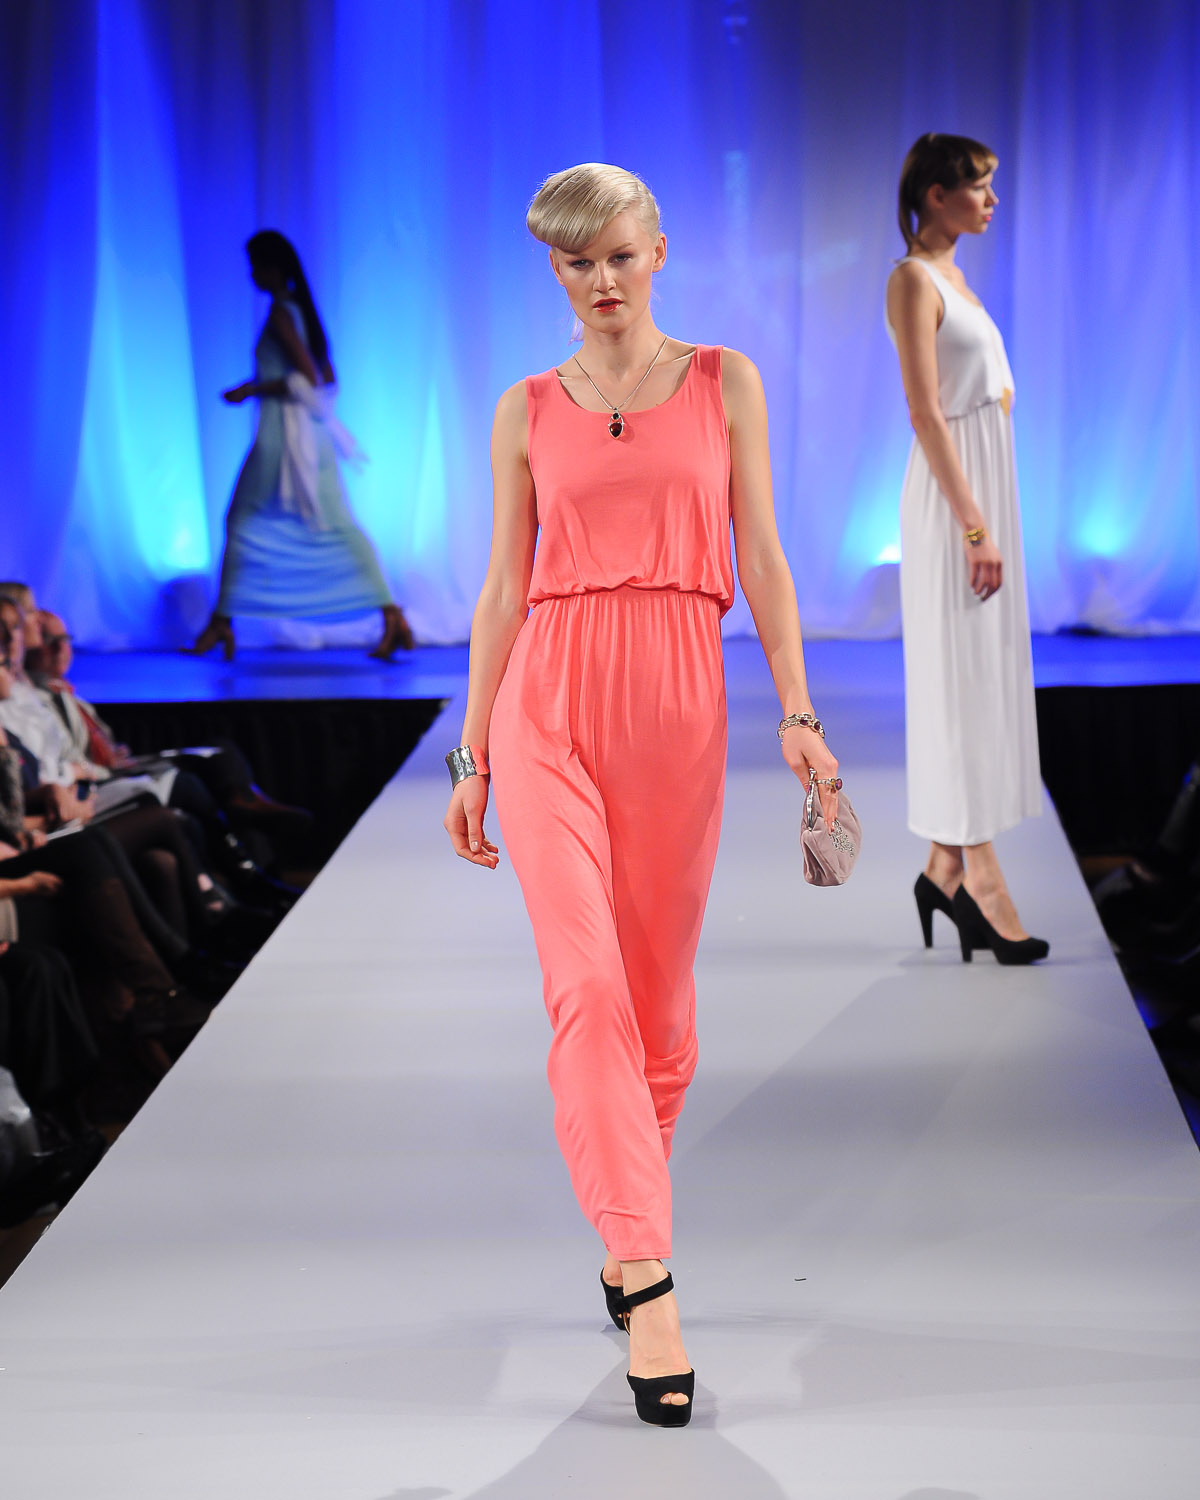 bath-in-fashion-spring-summer-18.jpg